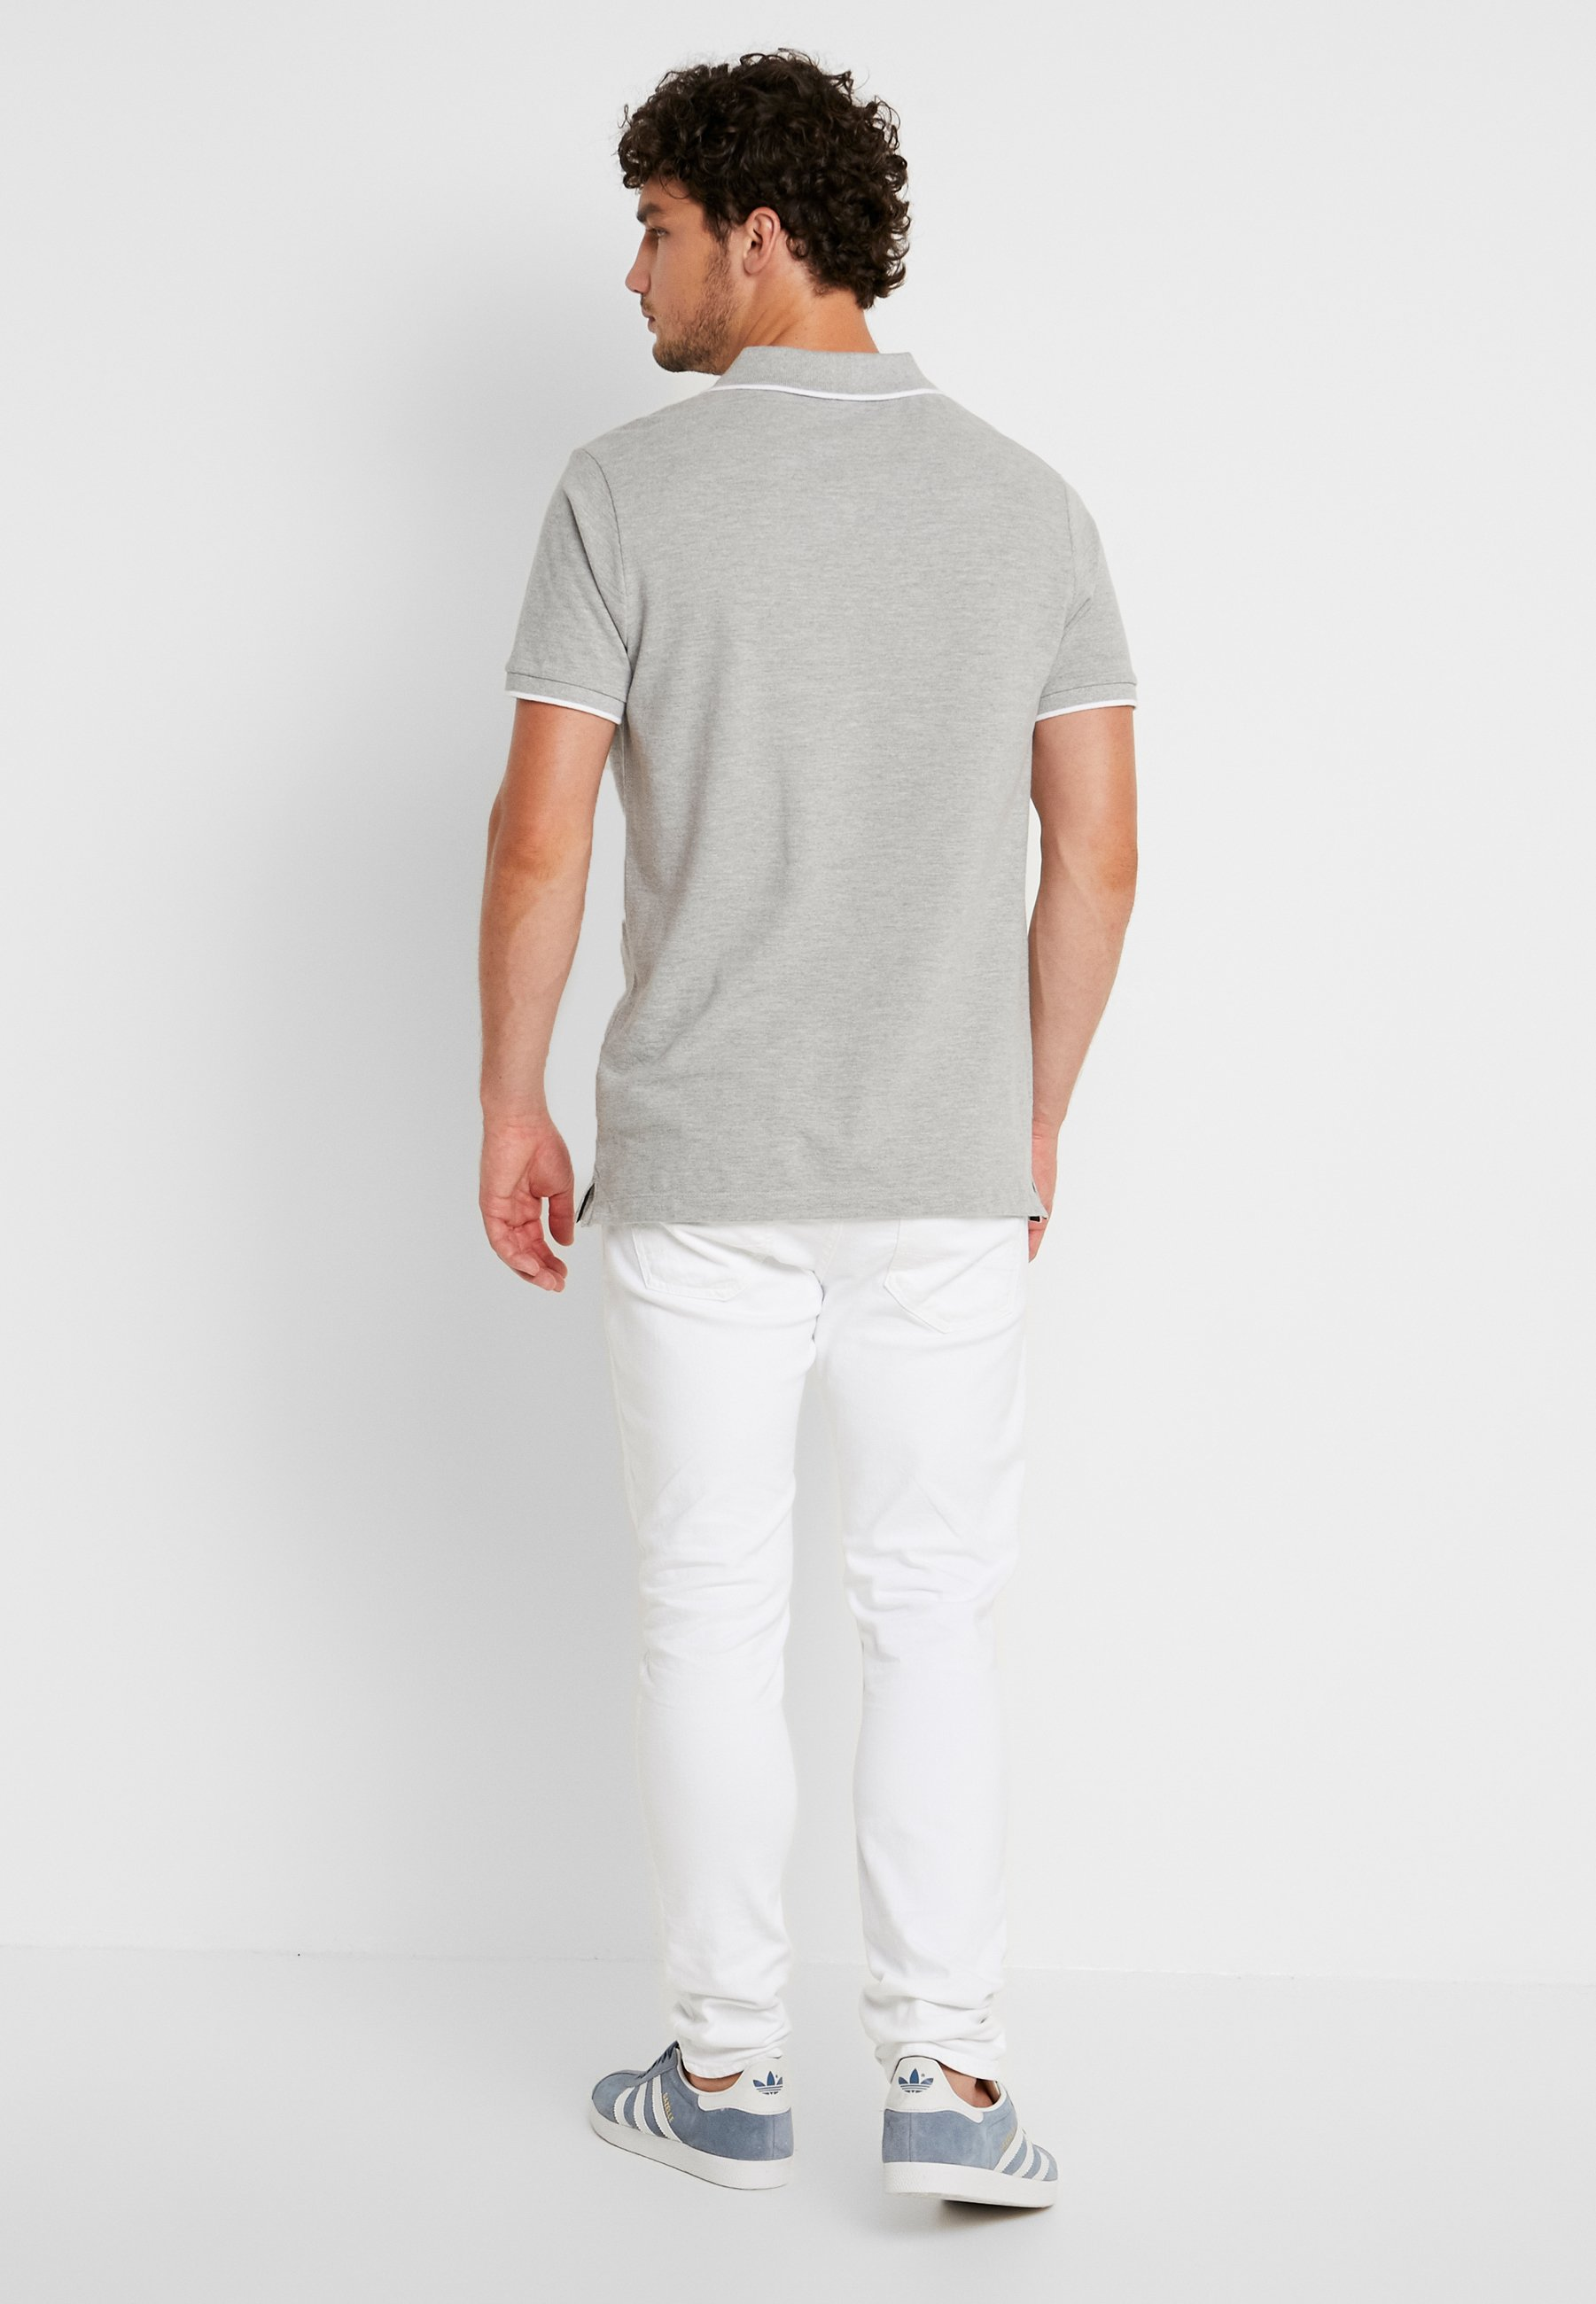 CoCleanJeans Hollister Skinny Hollister CoCleanJeans White Skinny CoCleanJeans Skinny White Hollister 80kXOPnNw